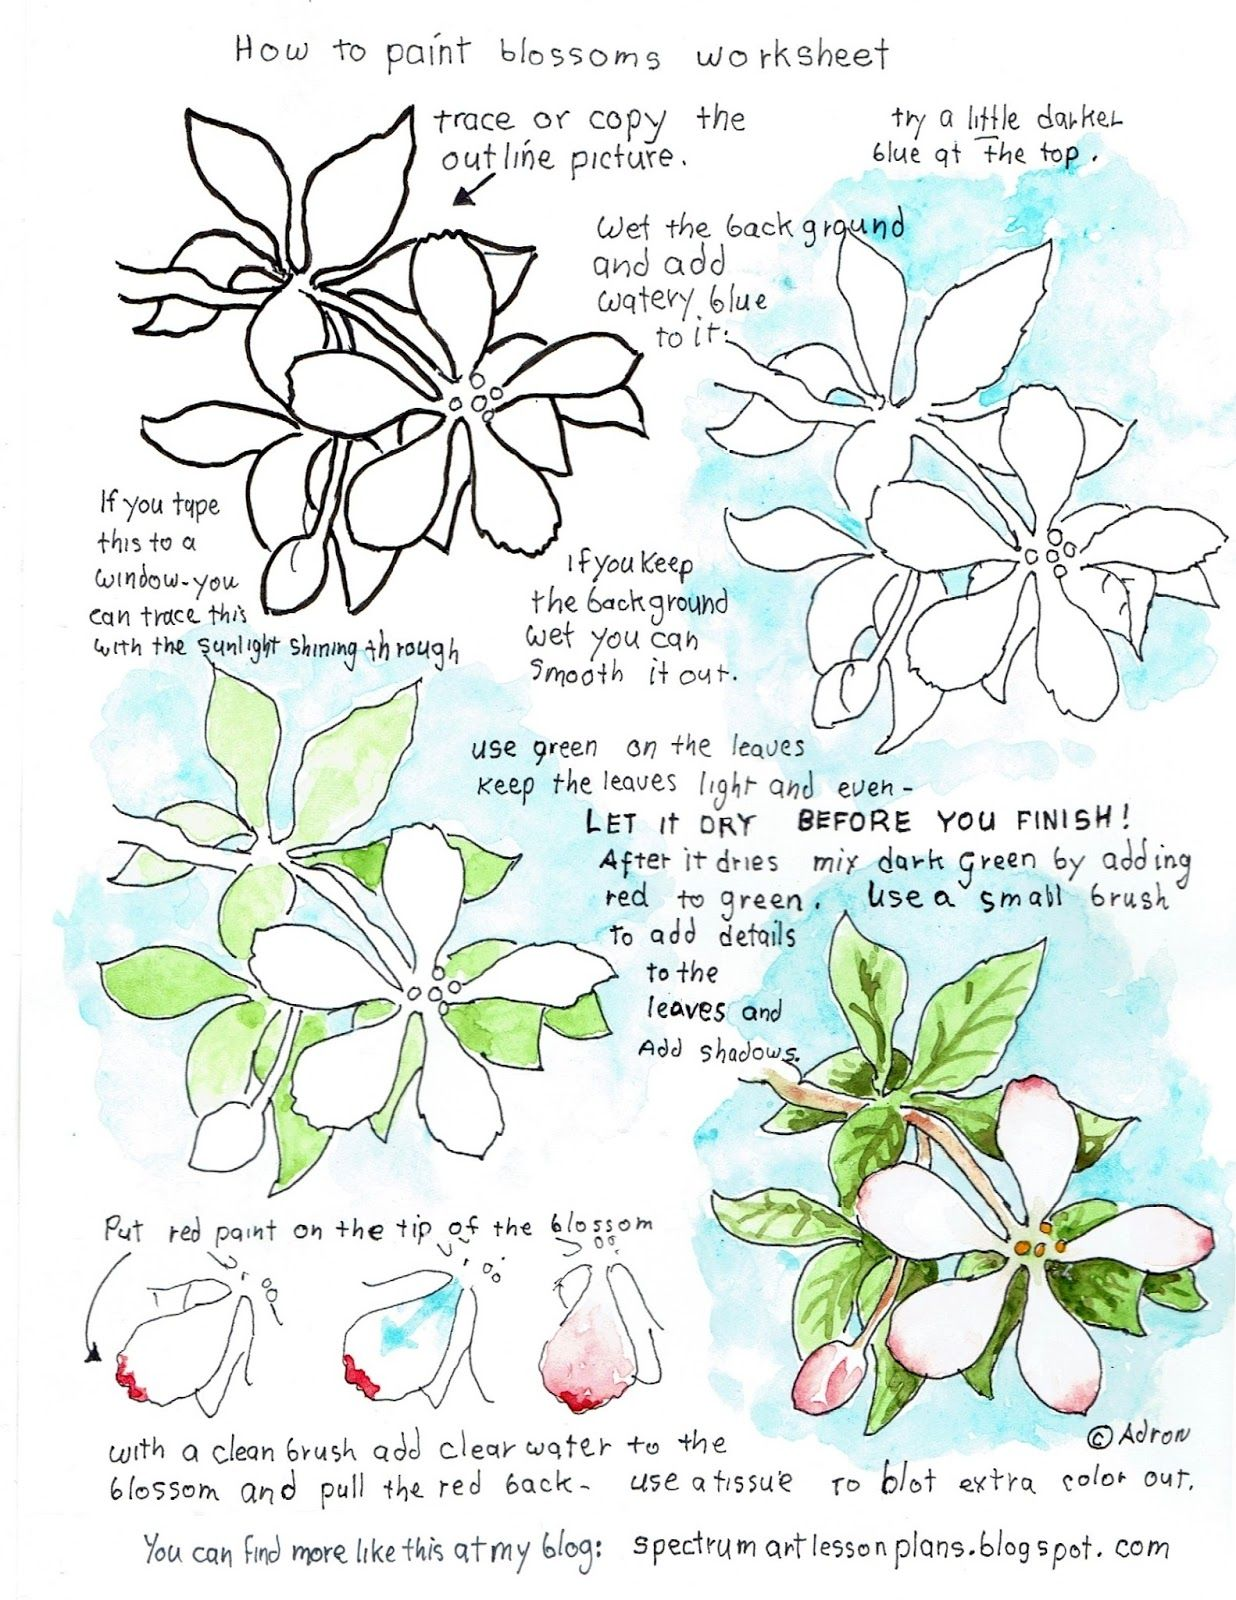 Pin By Adron Dozat On How To Draw Worksheets I Designed In